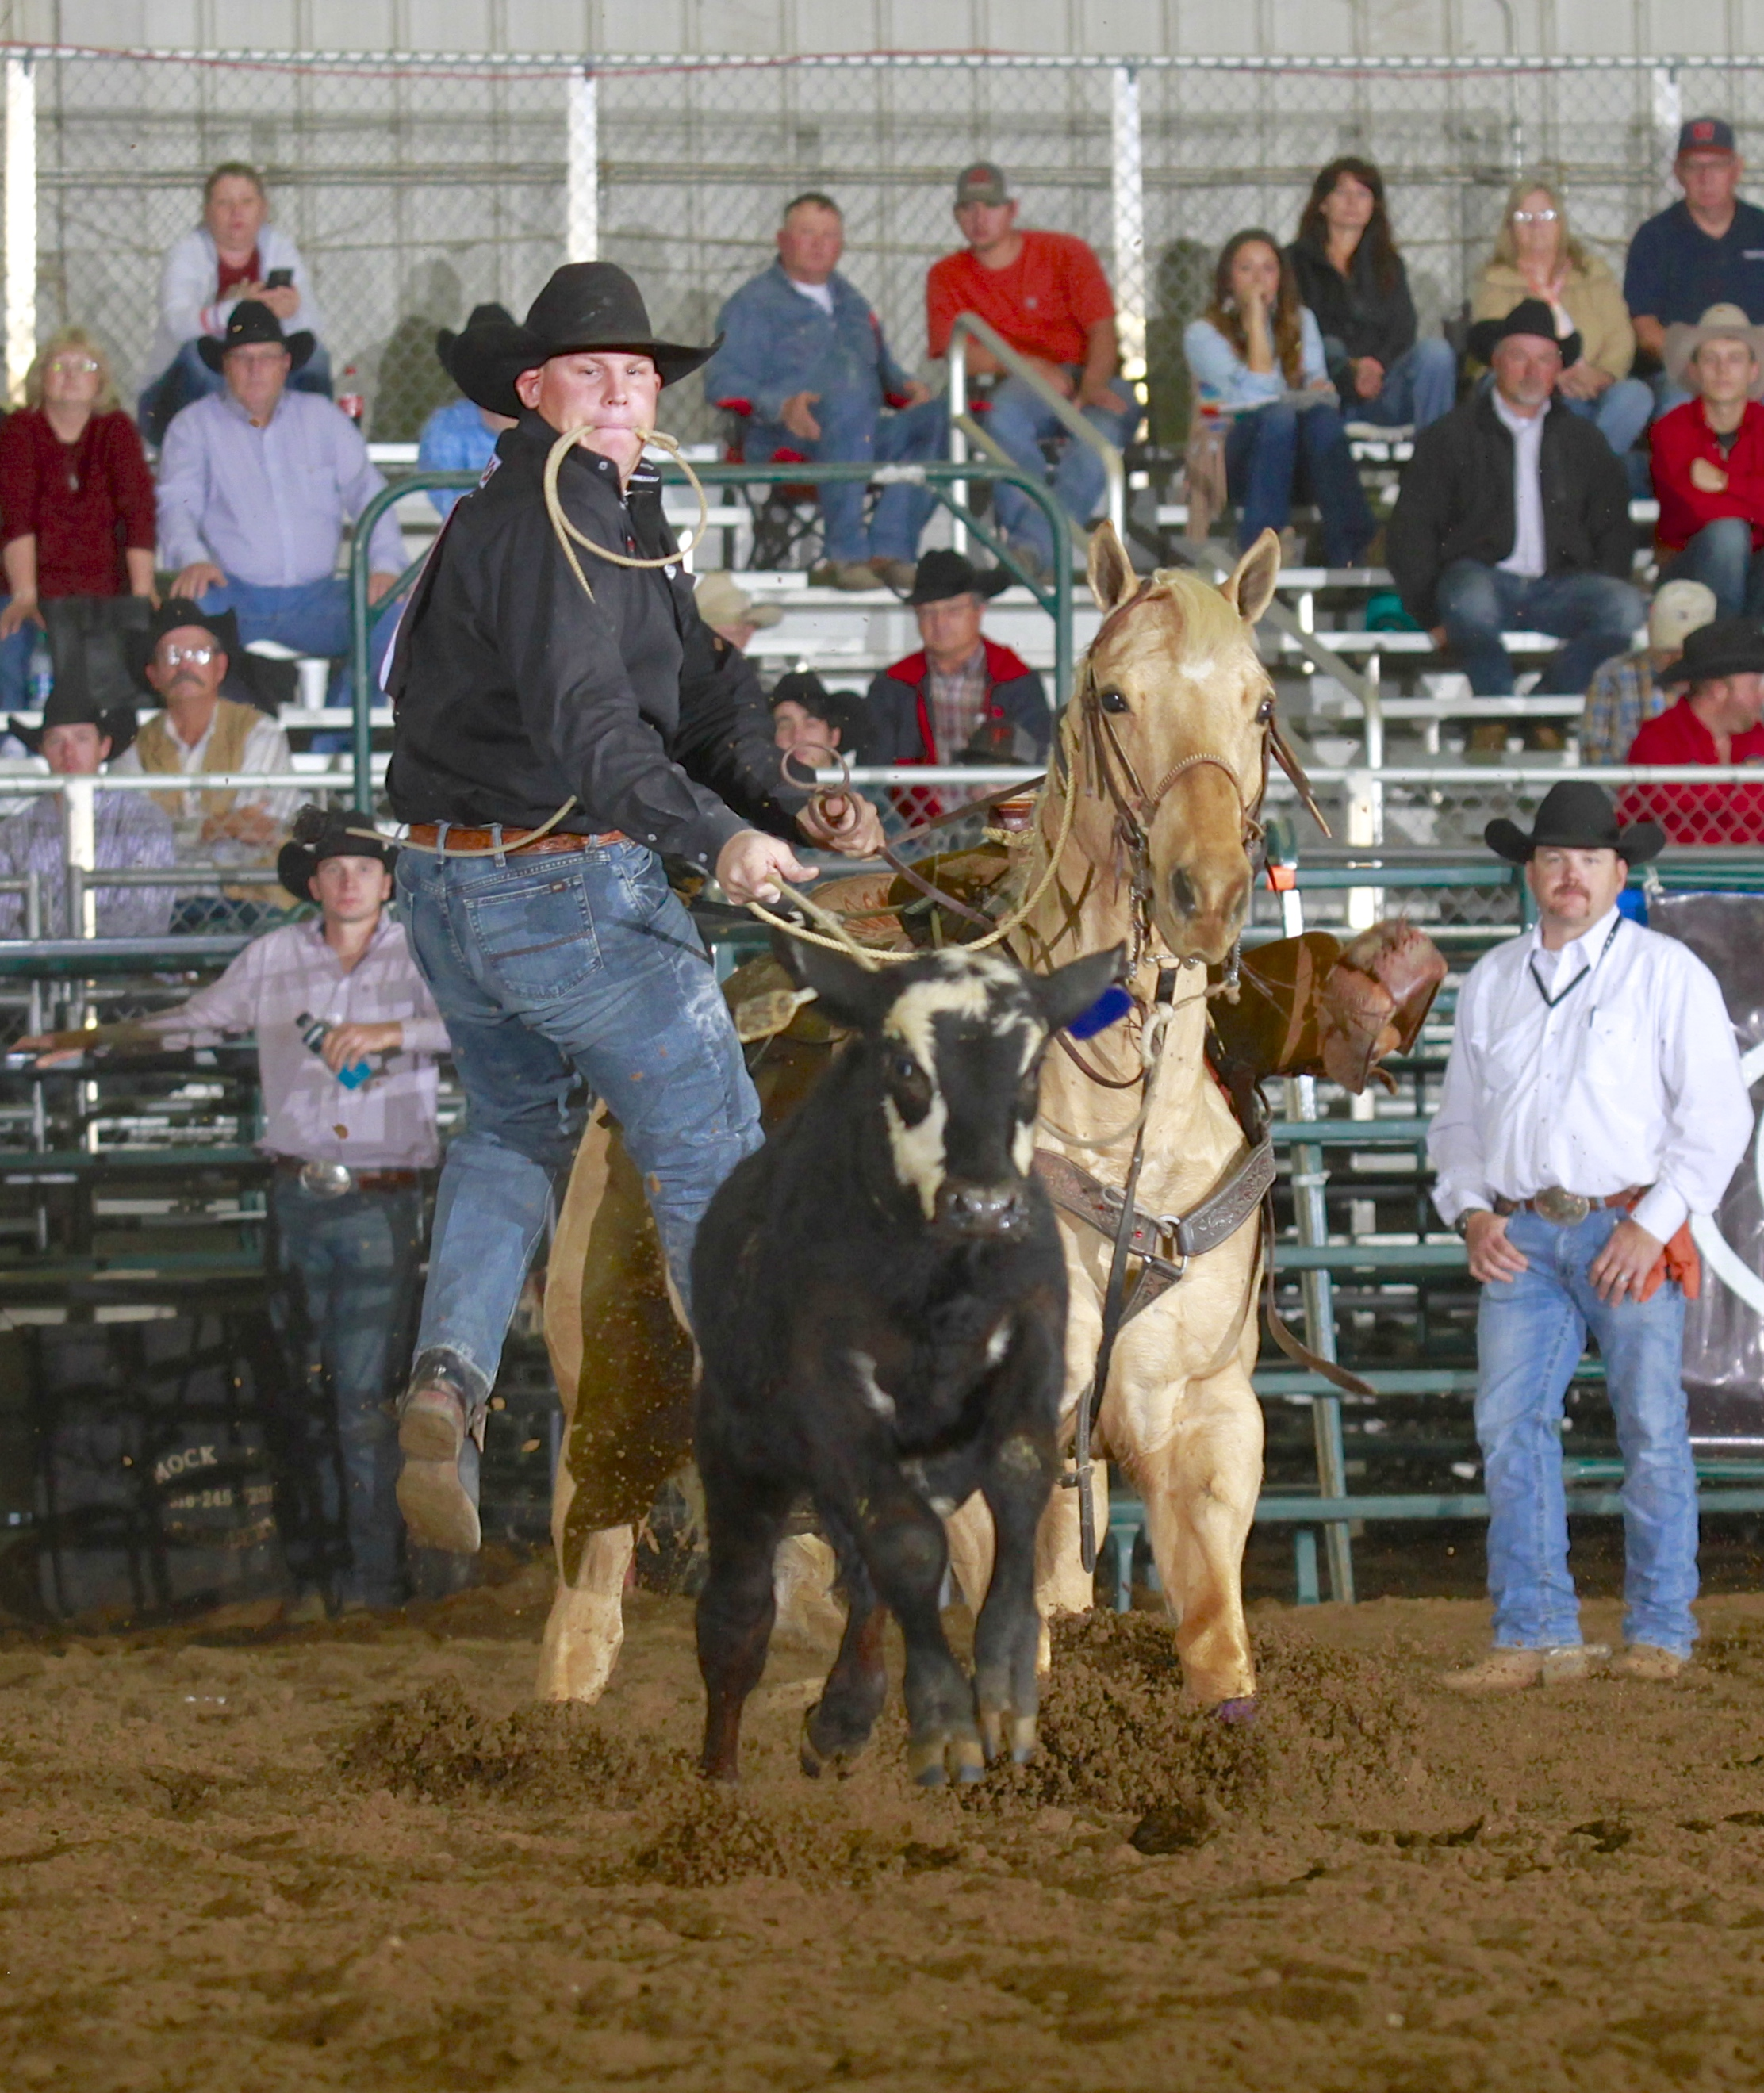 2017 Champion Tie Down Roper - Ethan Hill